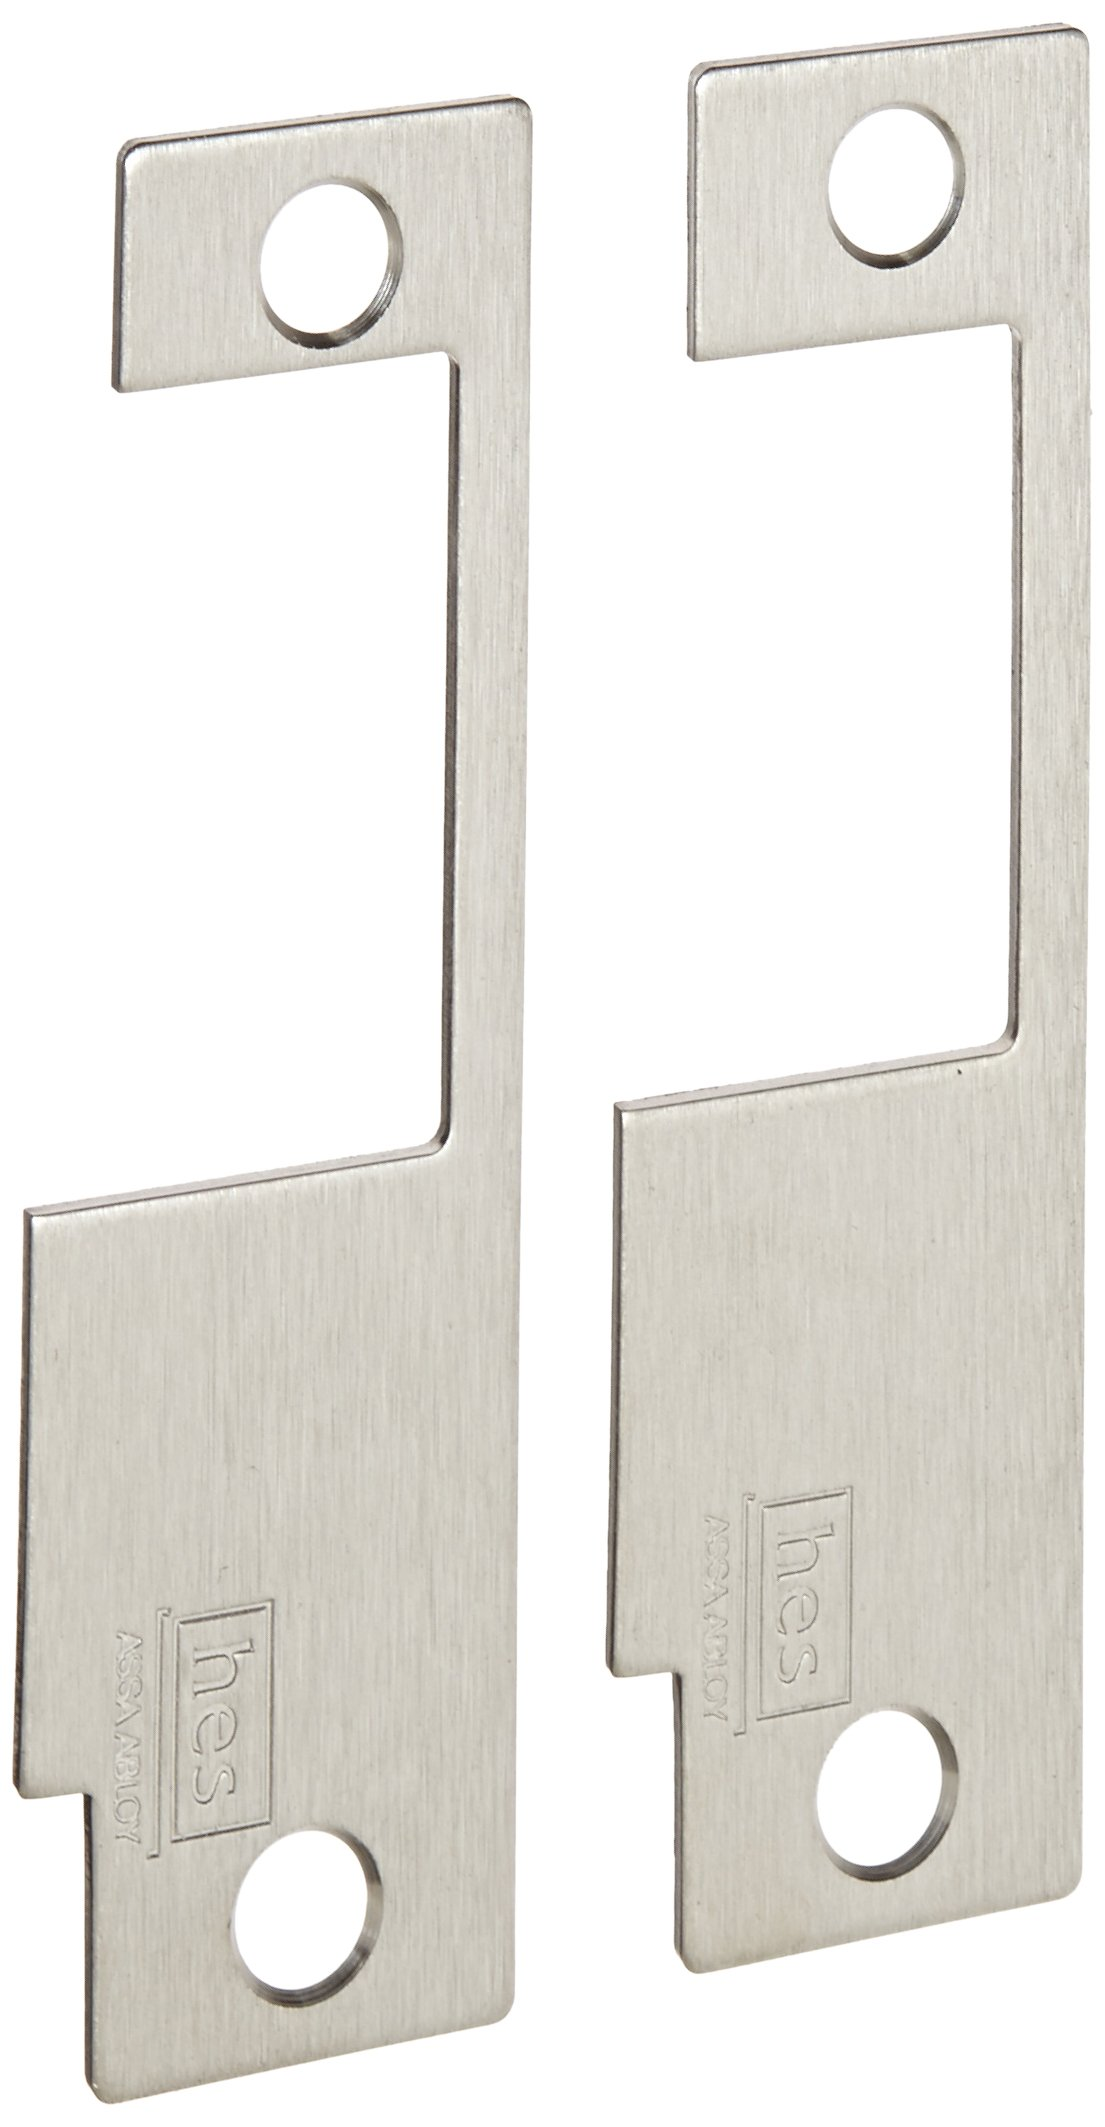 HES Stainless Steel 852L Faceplate for 8500 Series Electric Strikes for Schlage Mortise Locksets, Satin Stainless Steel Finish